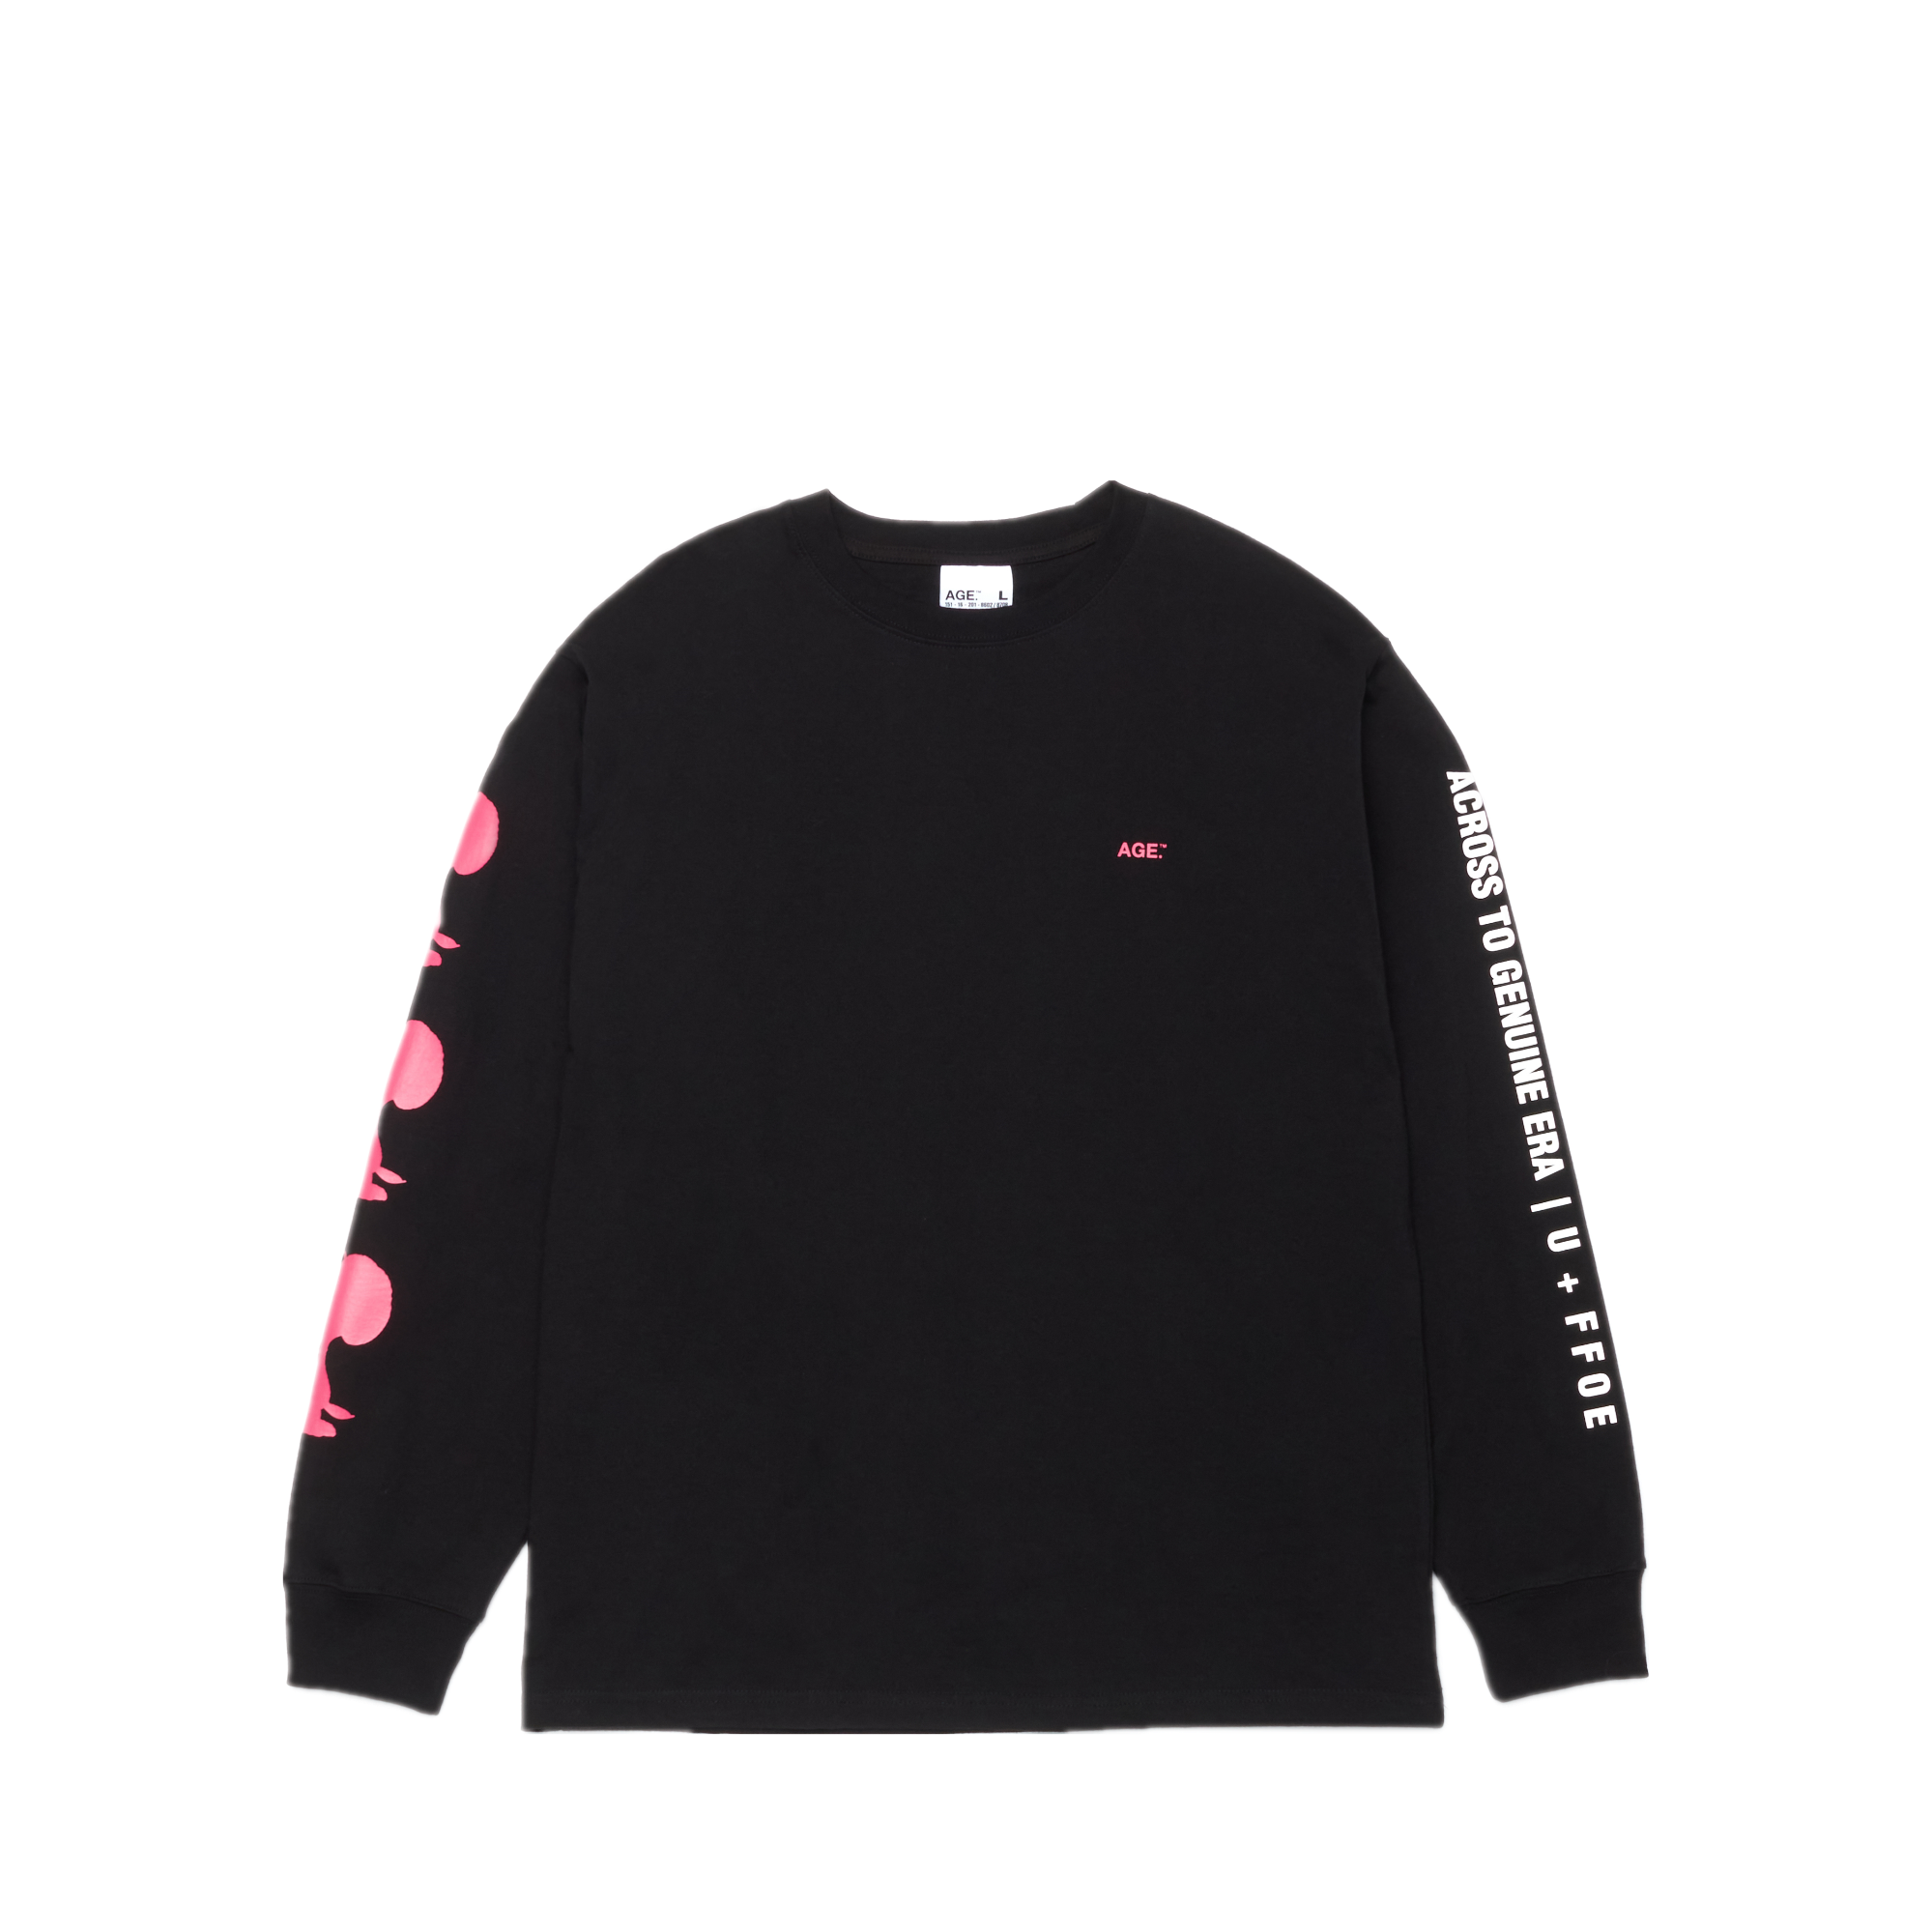 AGE X Snoopy Shadow Long SLV Tee BK/PK